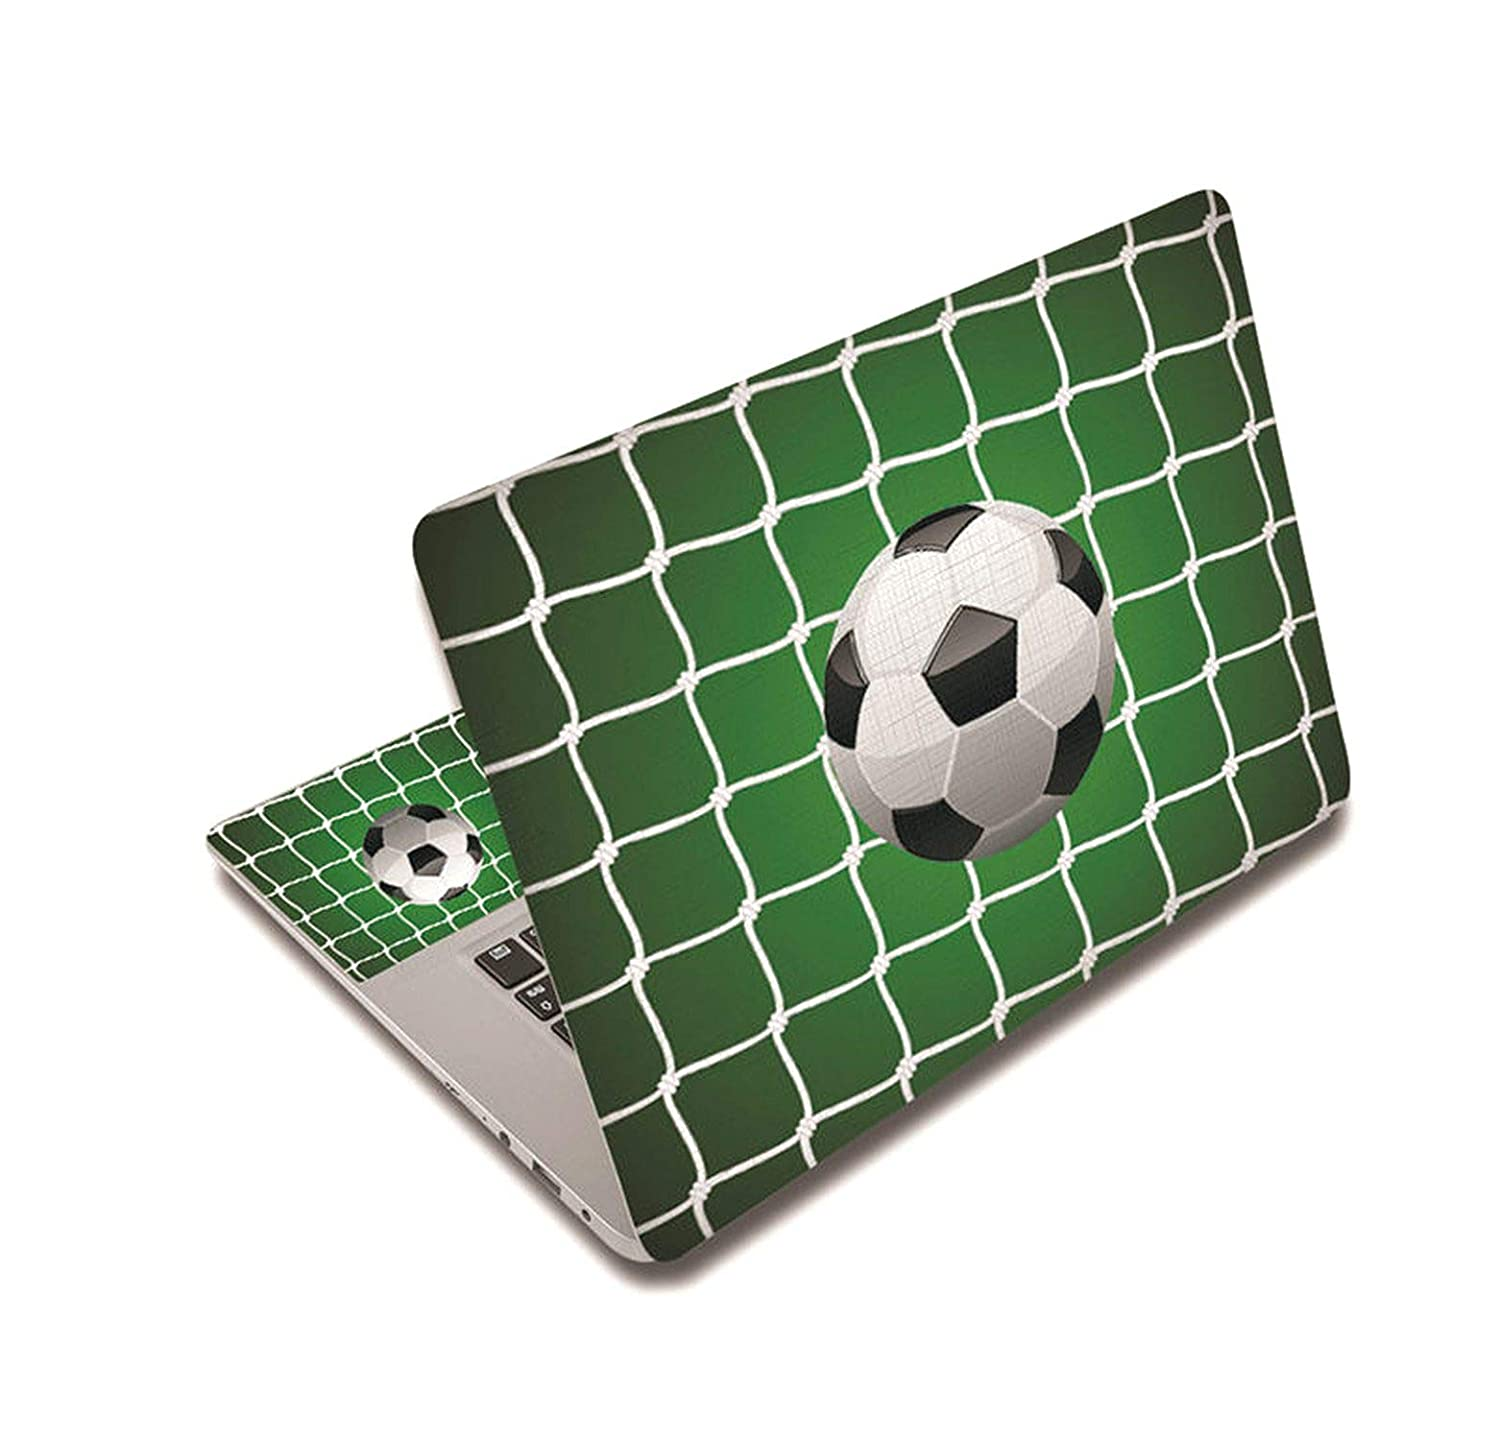 Football Laptop Sticker Basketball Notebook Skin Computer Stickers For Acer/Dell/Asus/Mi Pro/Lenovo,15 Inch,Laptop Skin 4